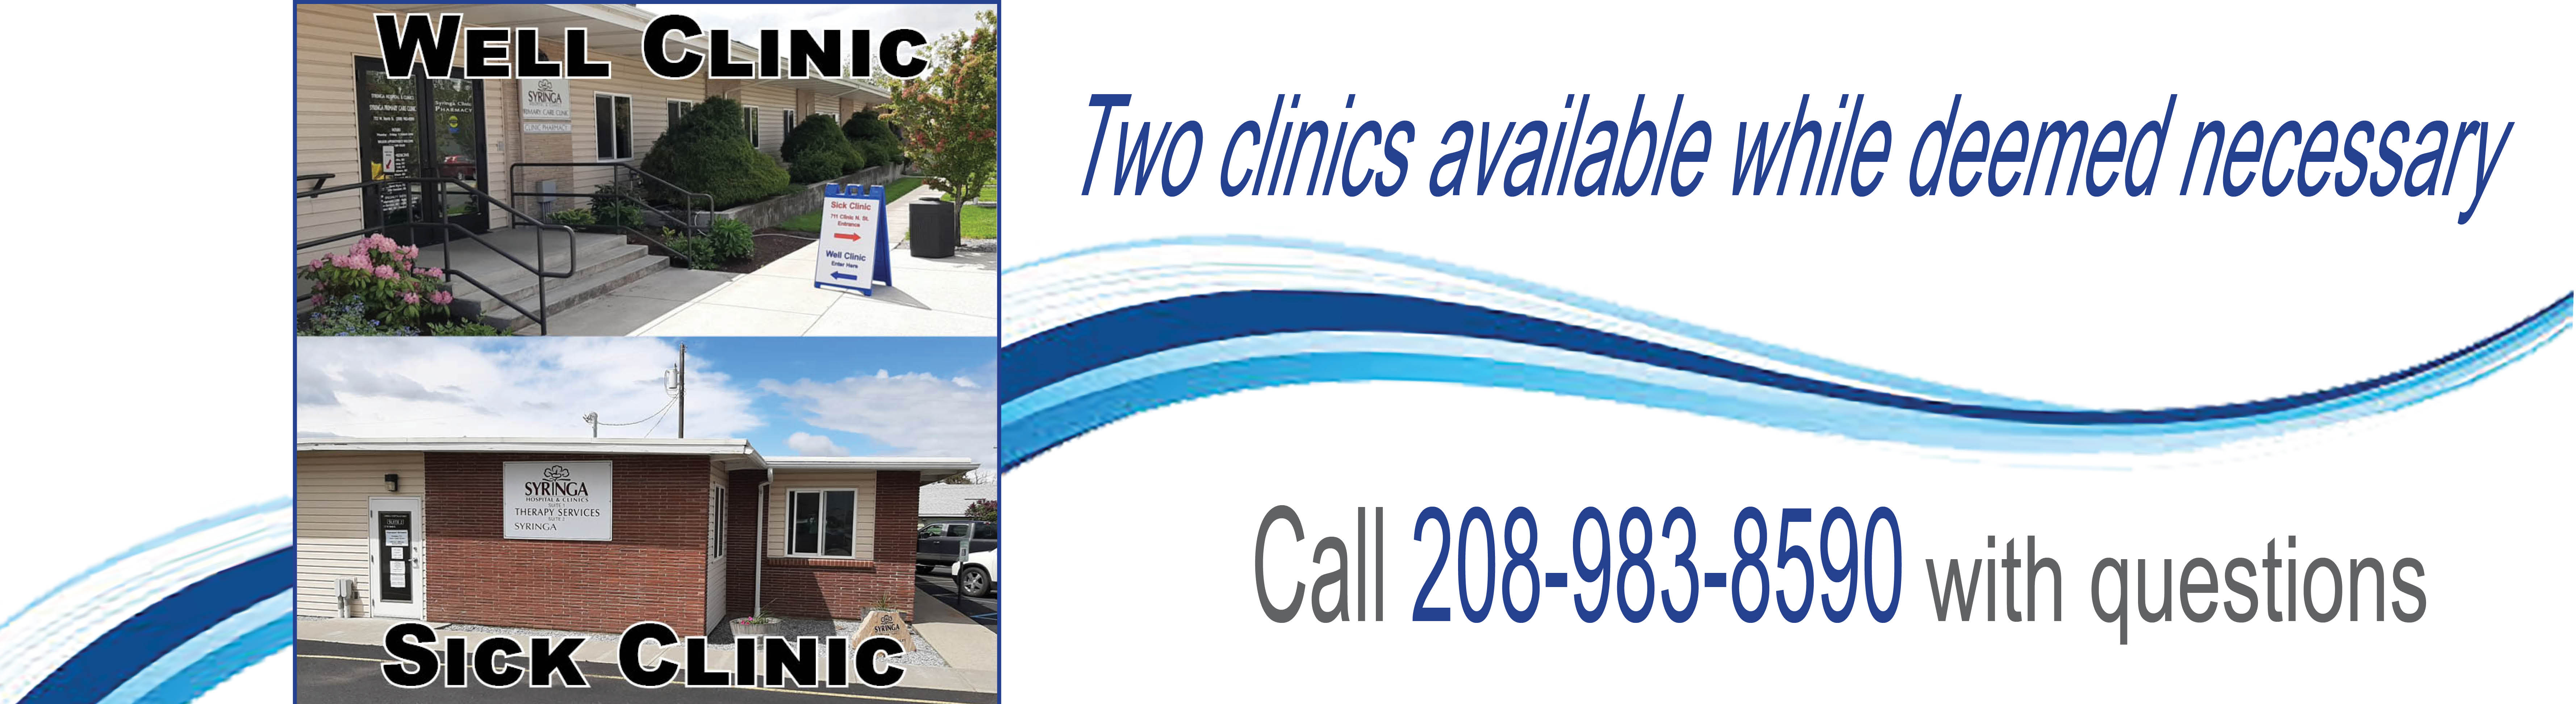 Well clinic and sick clinic available while deemed necessary. Call 208-983-8590 with questions.